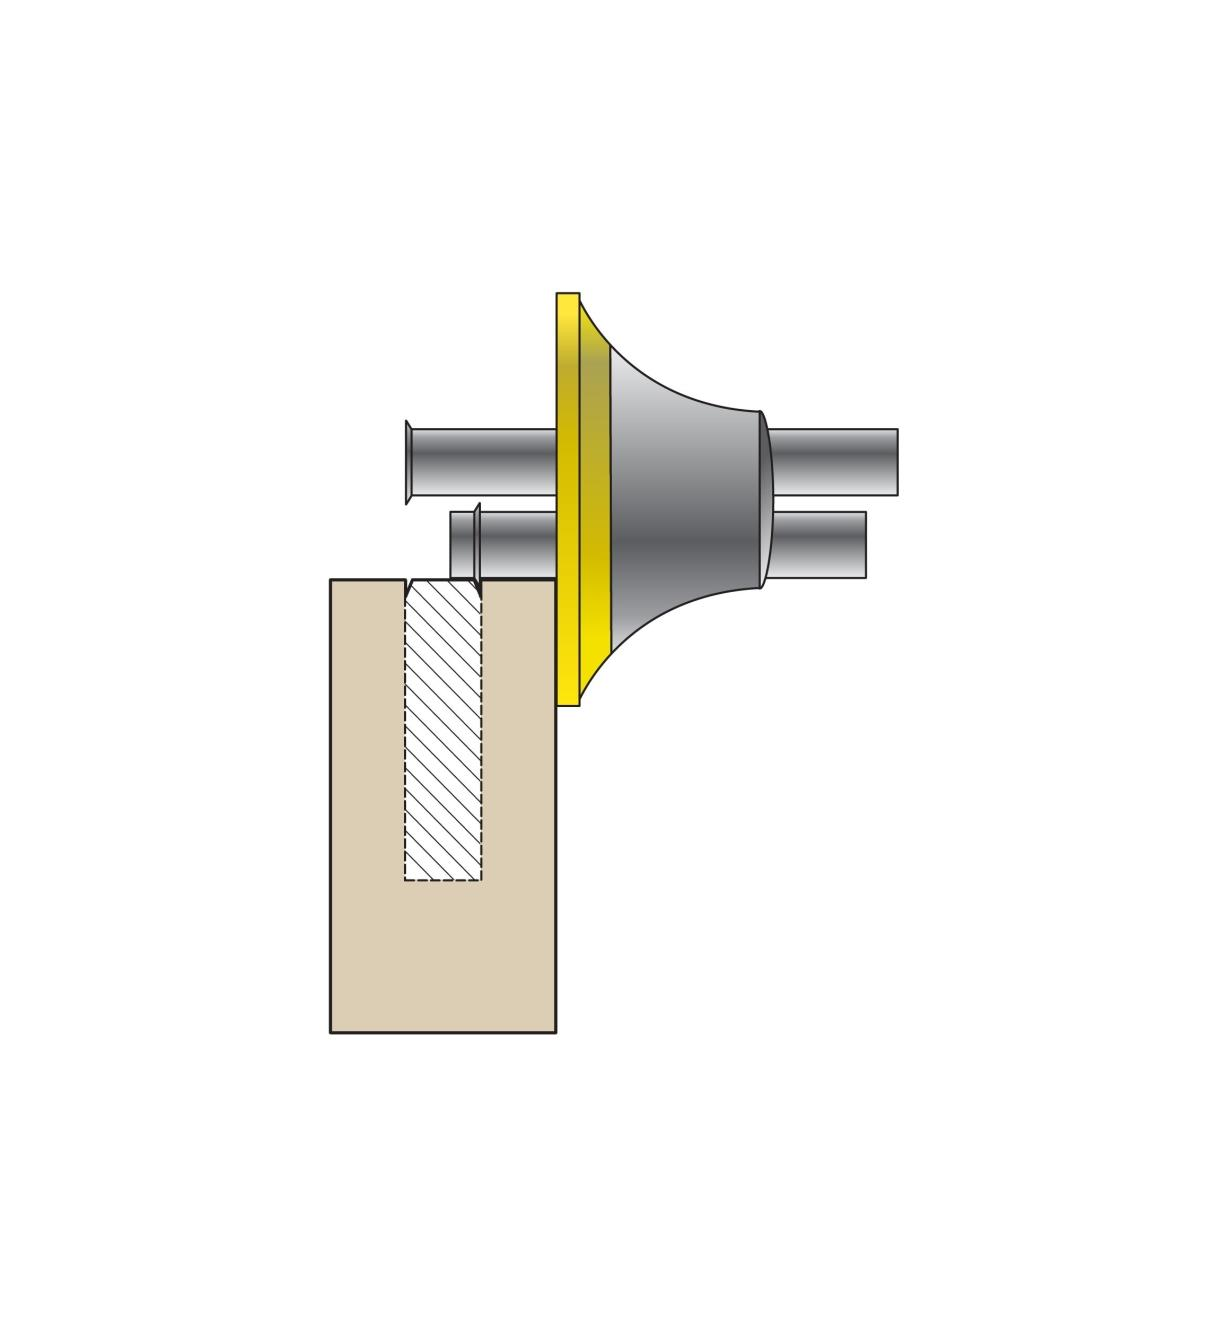 Illustration showing cutting-wheel bevels oriented to mark a mortise